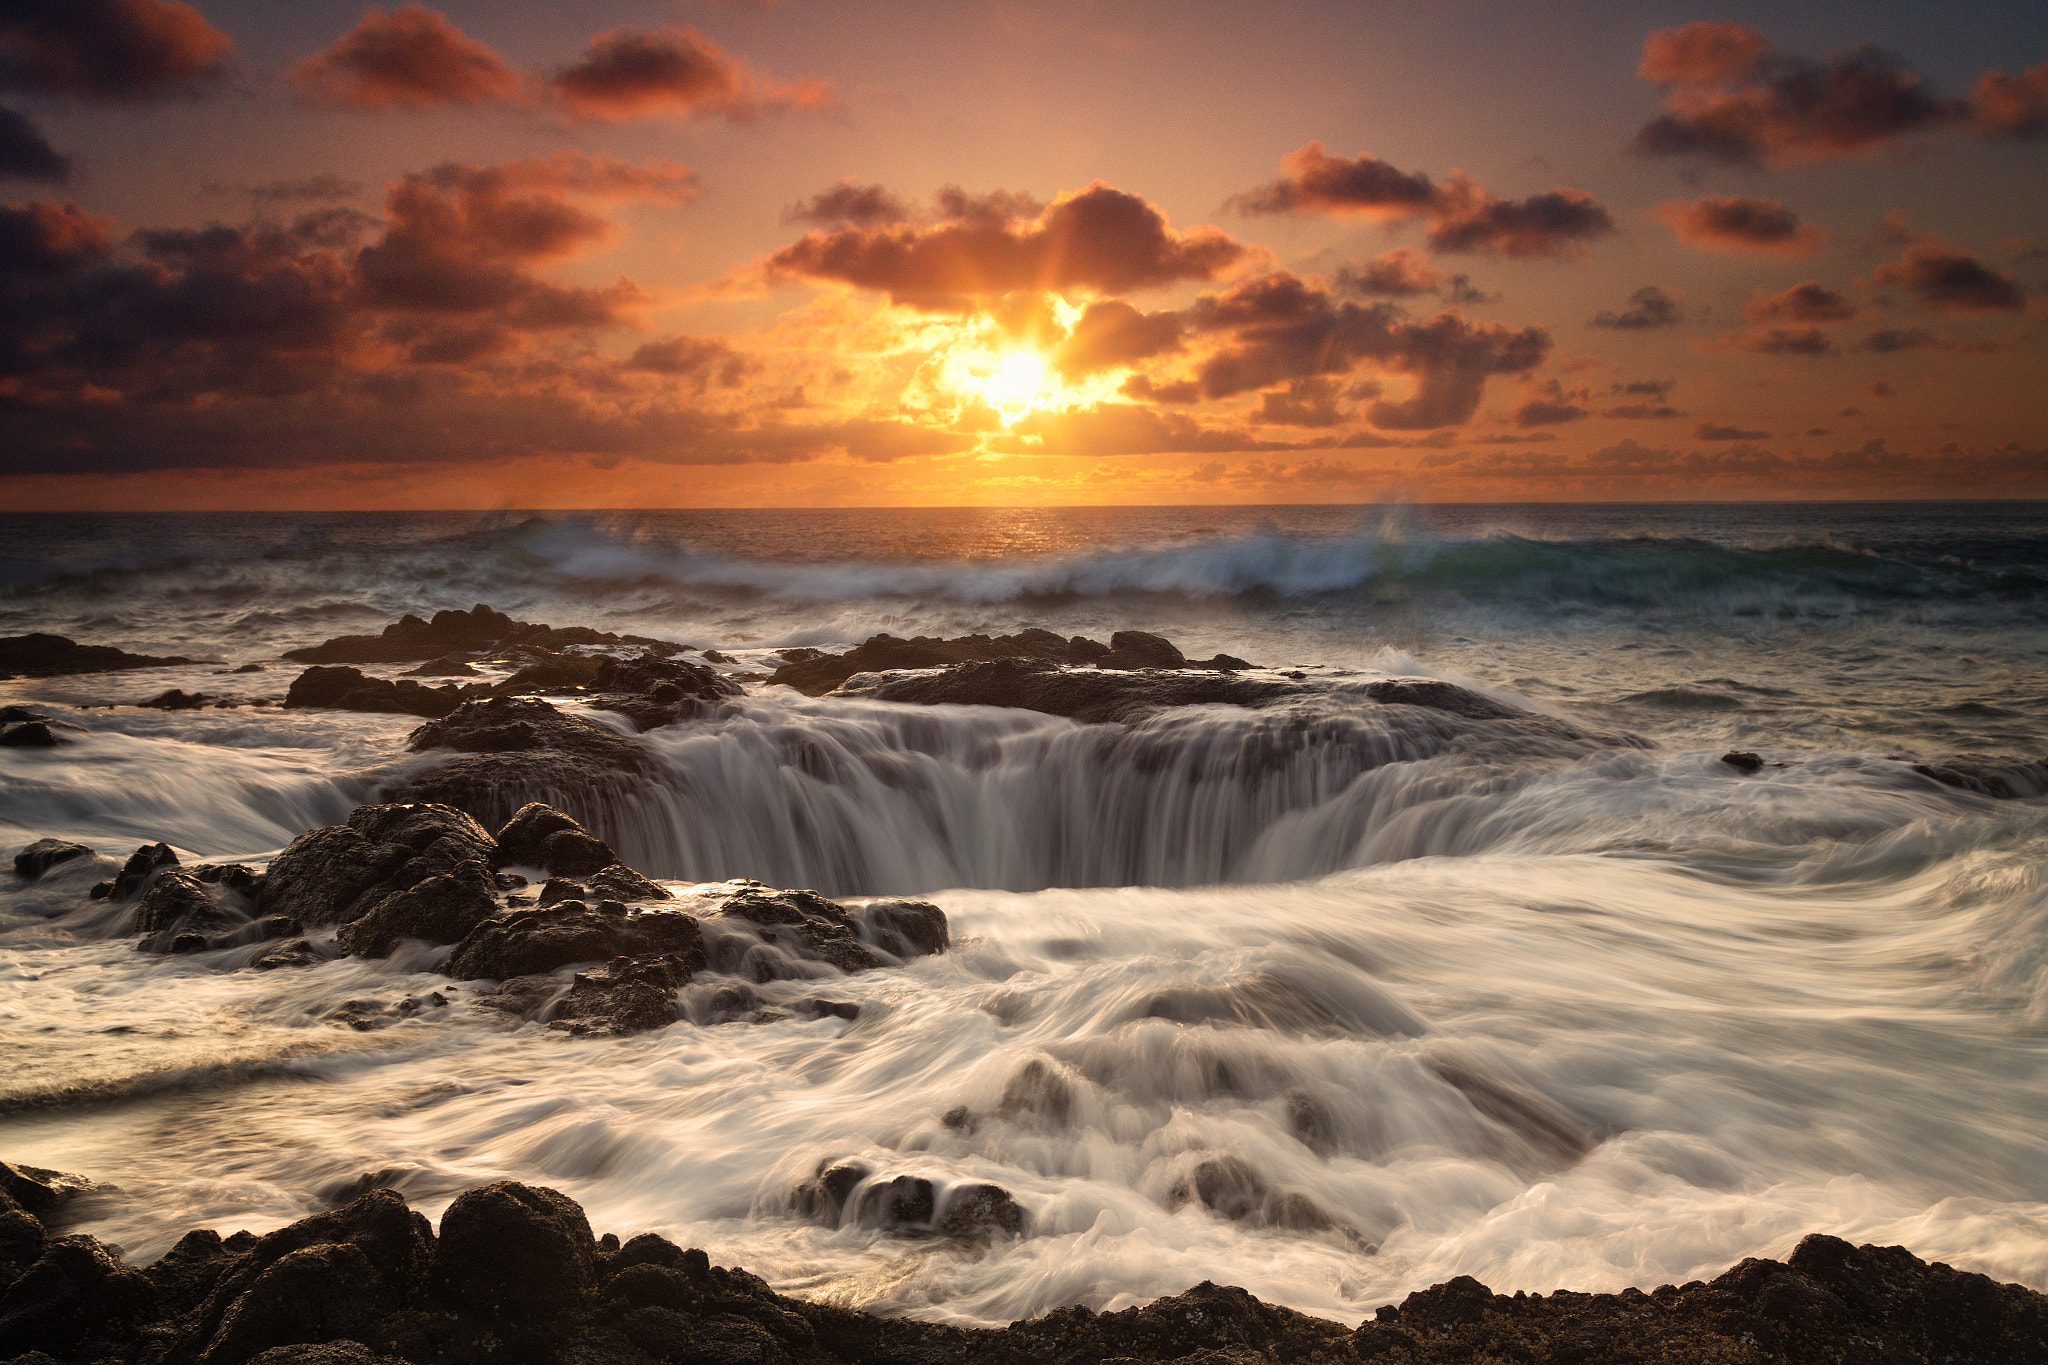 Photograph The Lost World by Majeed Badizadegan on 500px